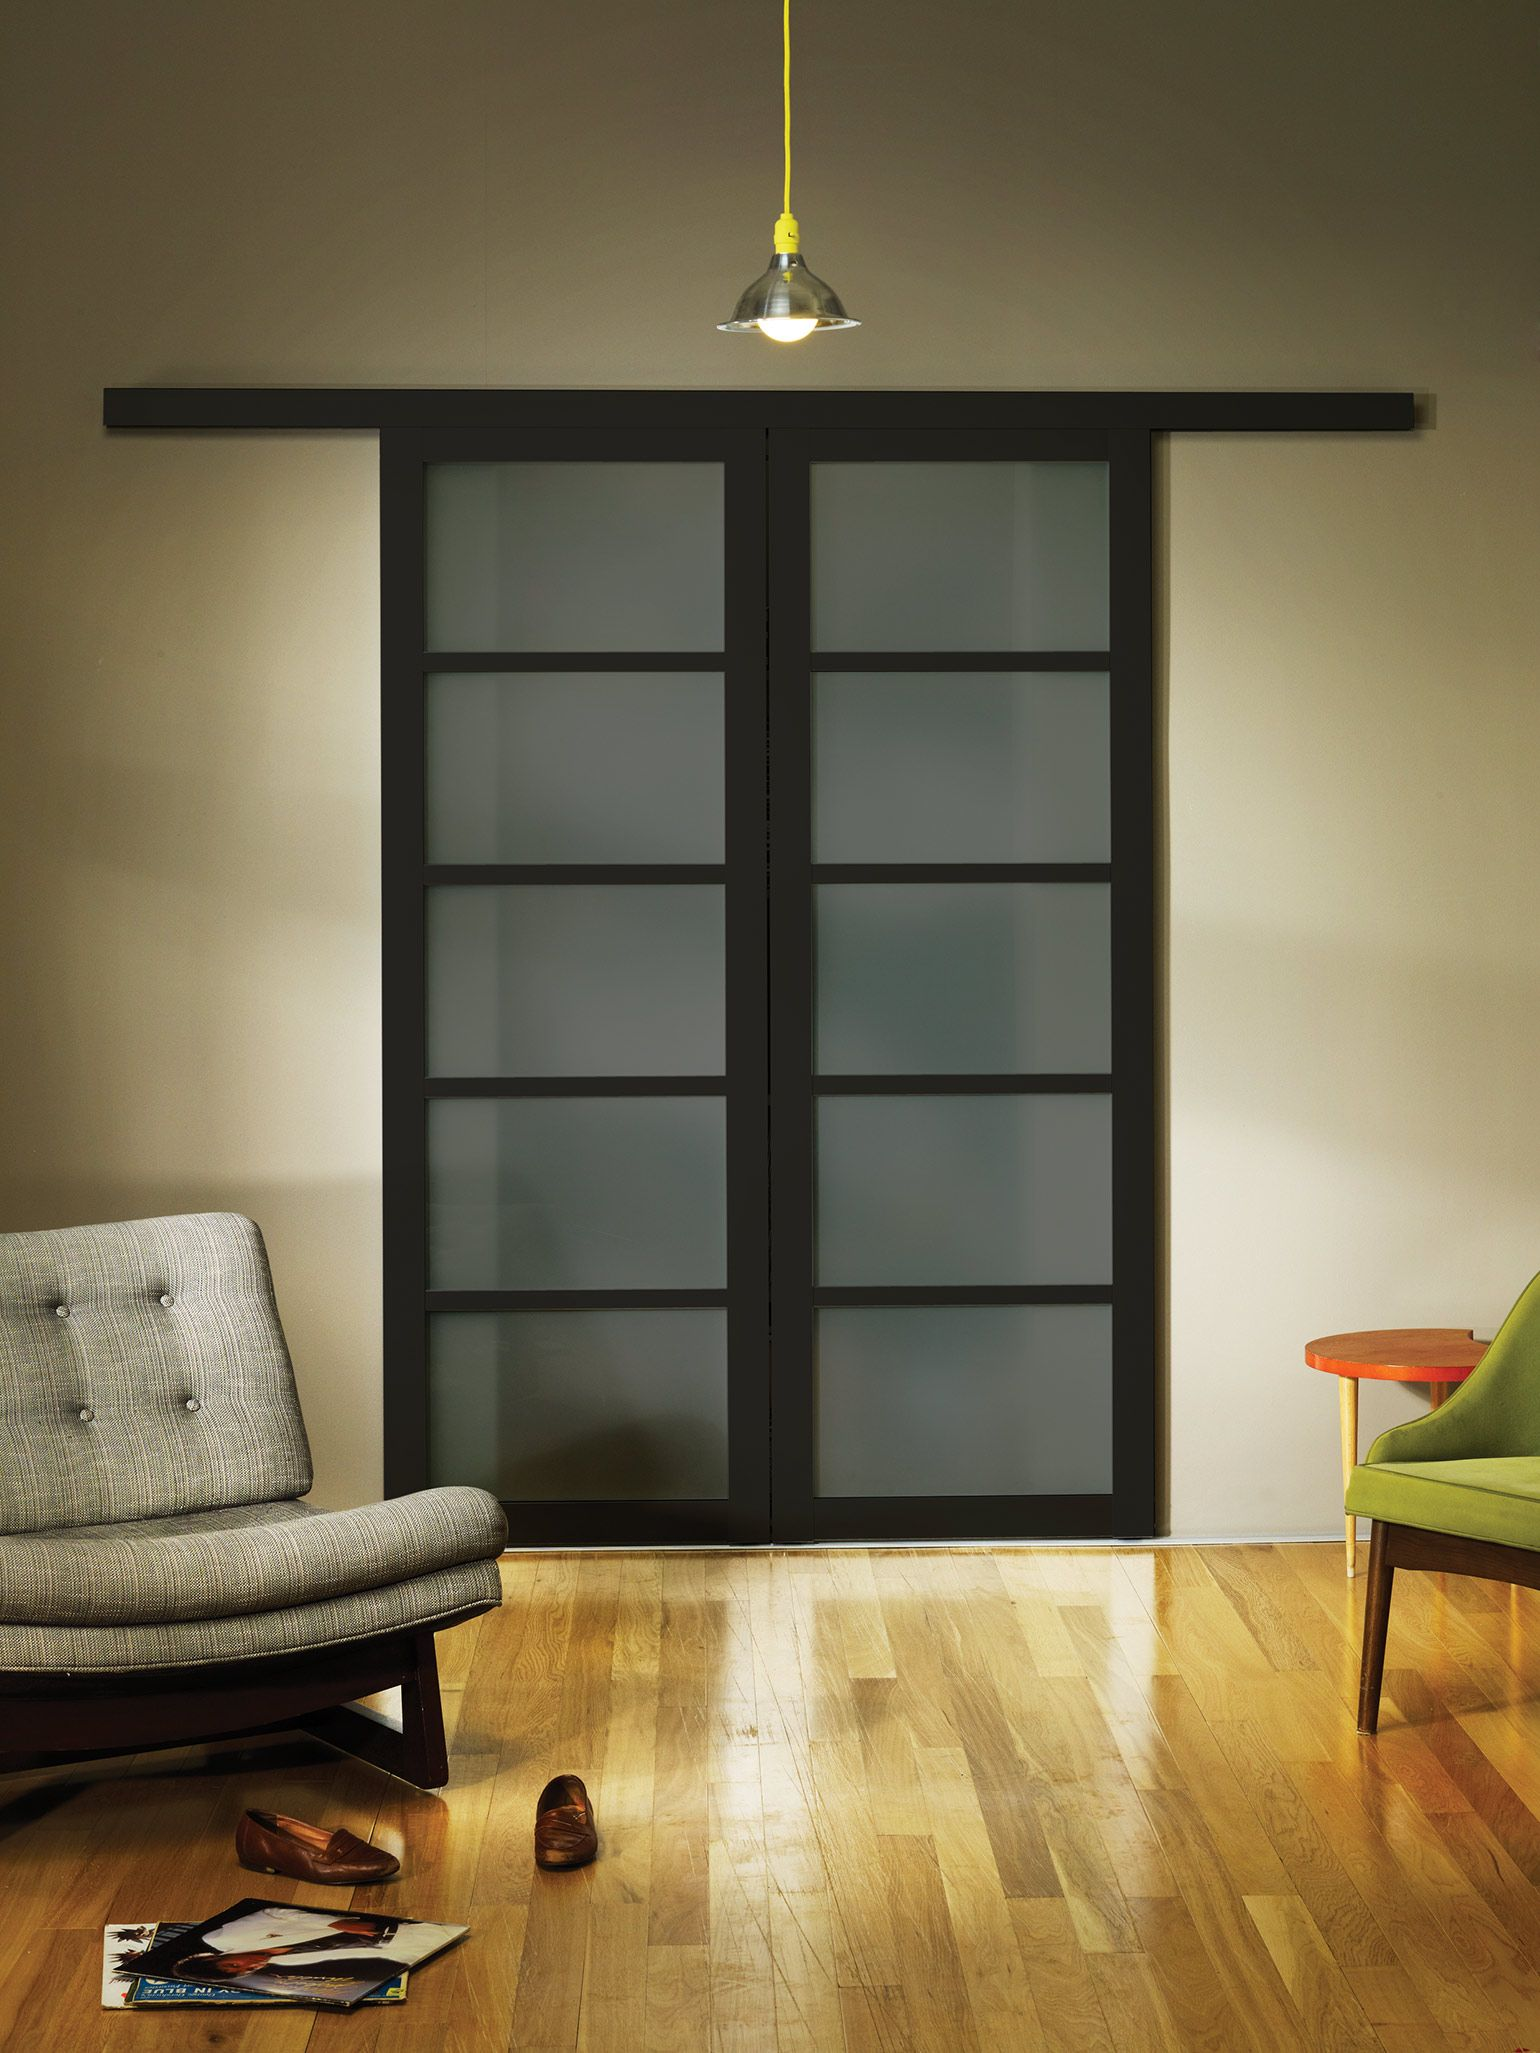 Smoked Frosted Glass Wall Slide Doors Sliding Doors Interior Glass Barn Doors Interior Doors Interior